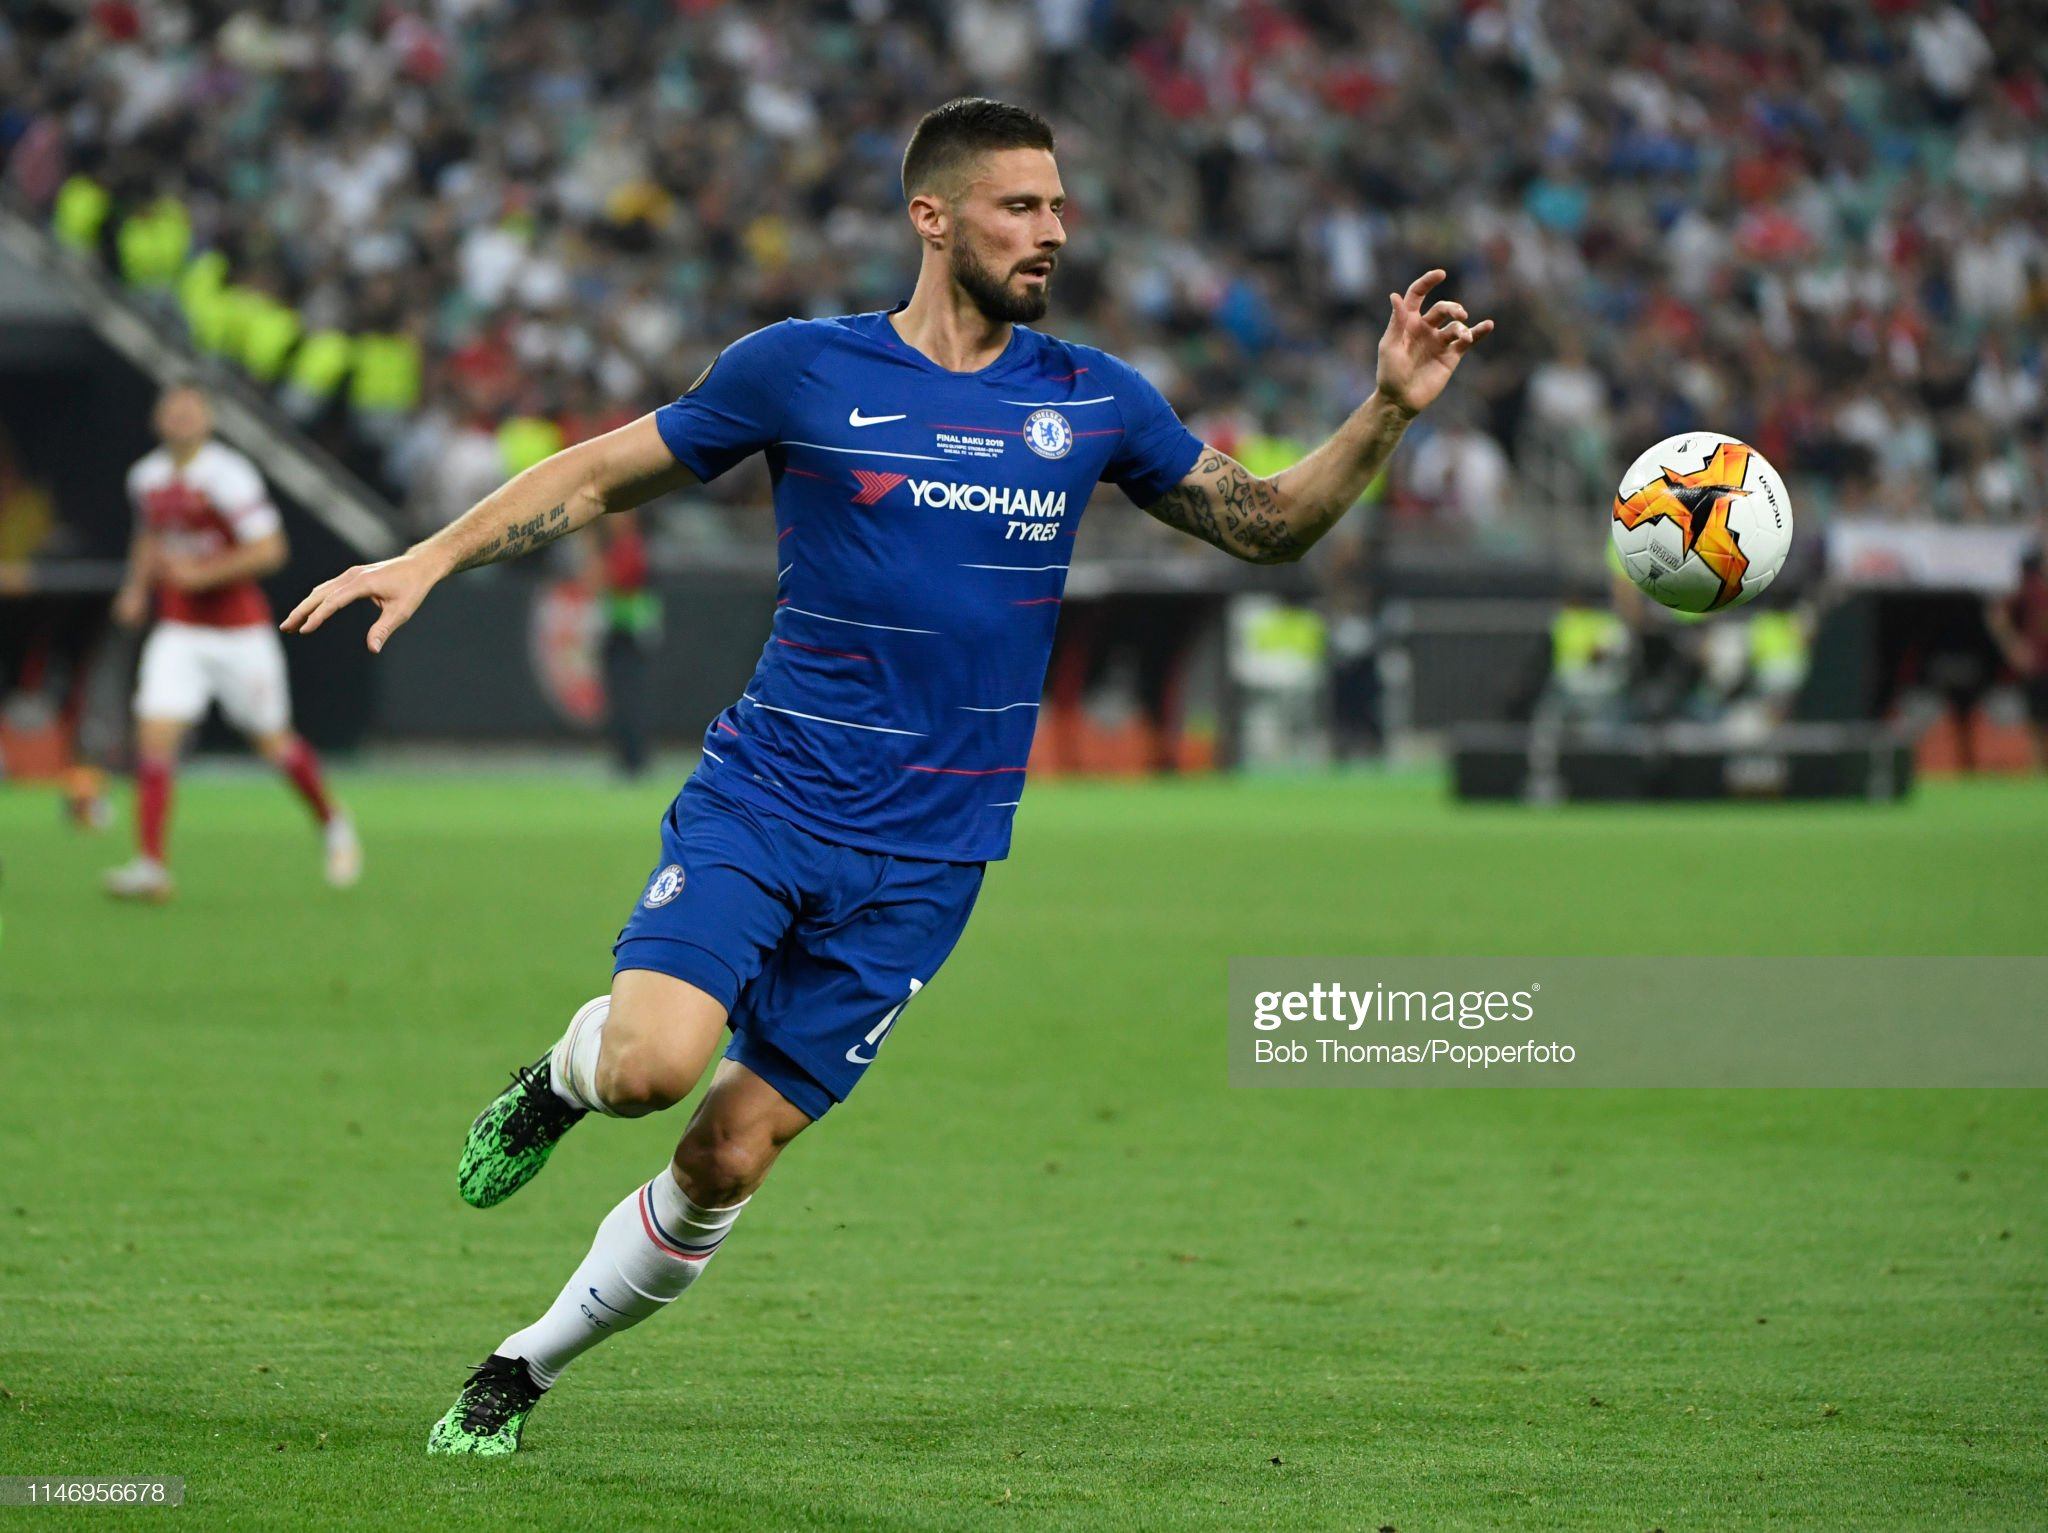 UEFA Europa Final Chelsea v Arsenal : News Photo